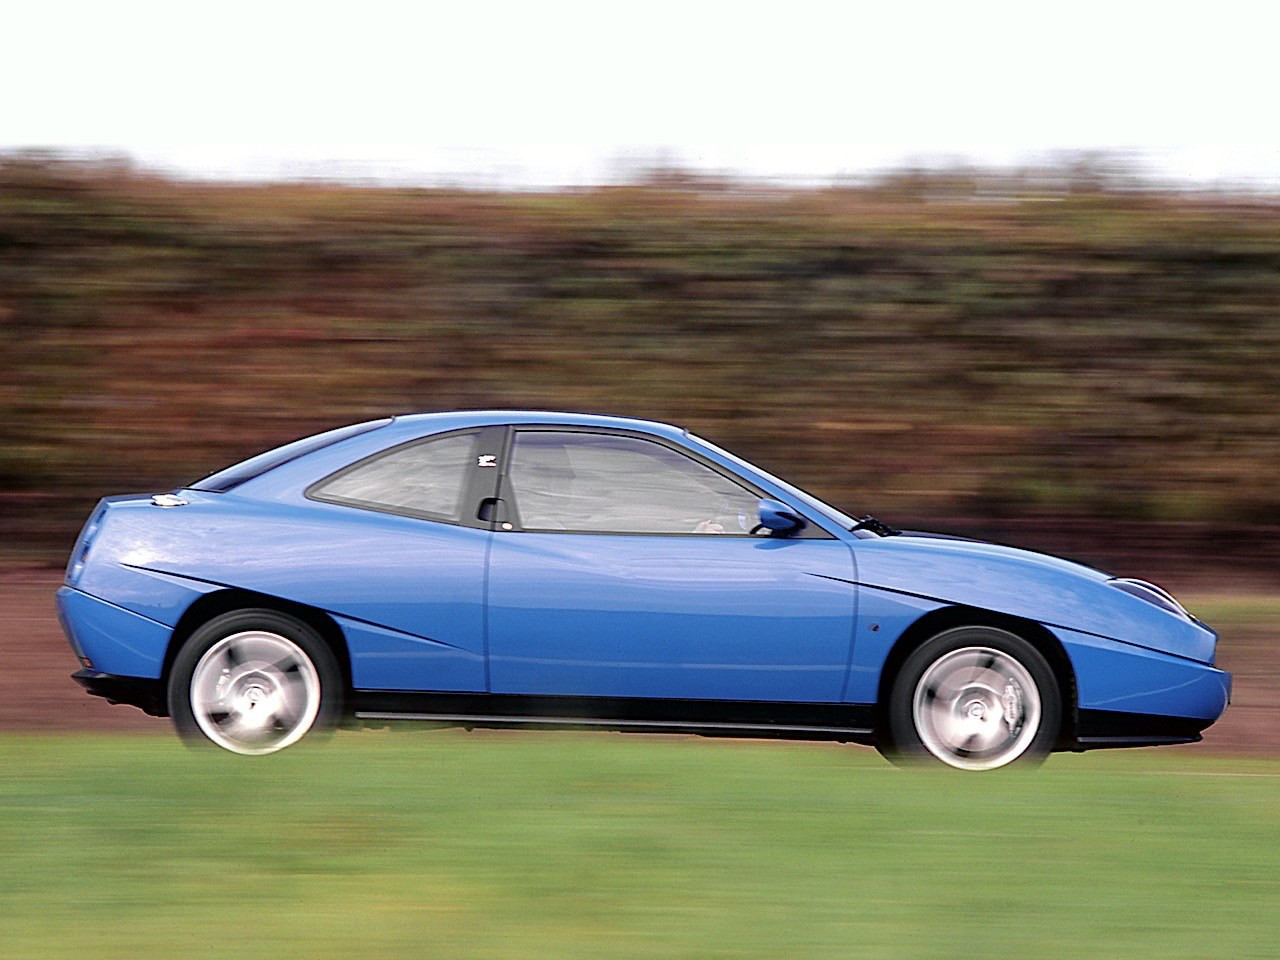 Fiat Coupe Fiat Coupe Specs And Photos 1994 1995 1996 1997 1998